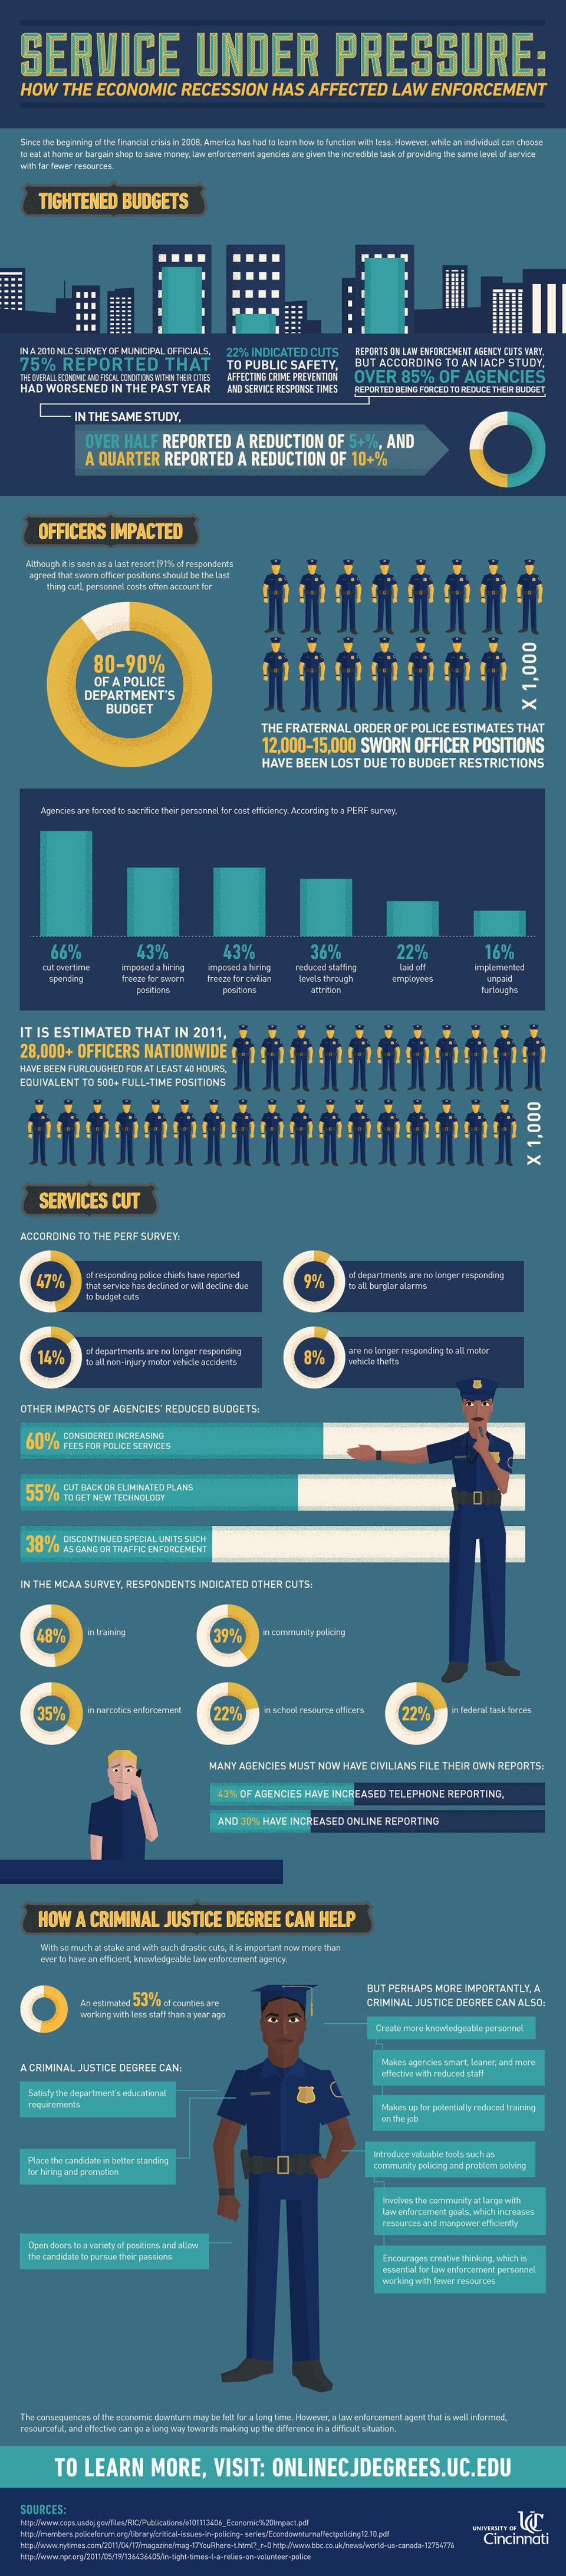 Service Under Pressure: How The Economic Recession Has Affected Law Enforcement